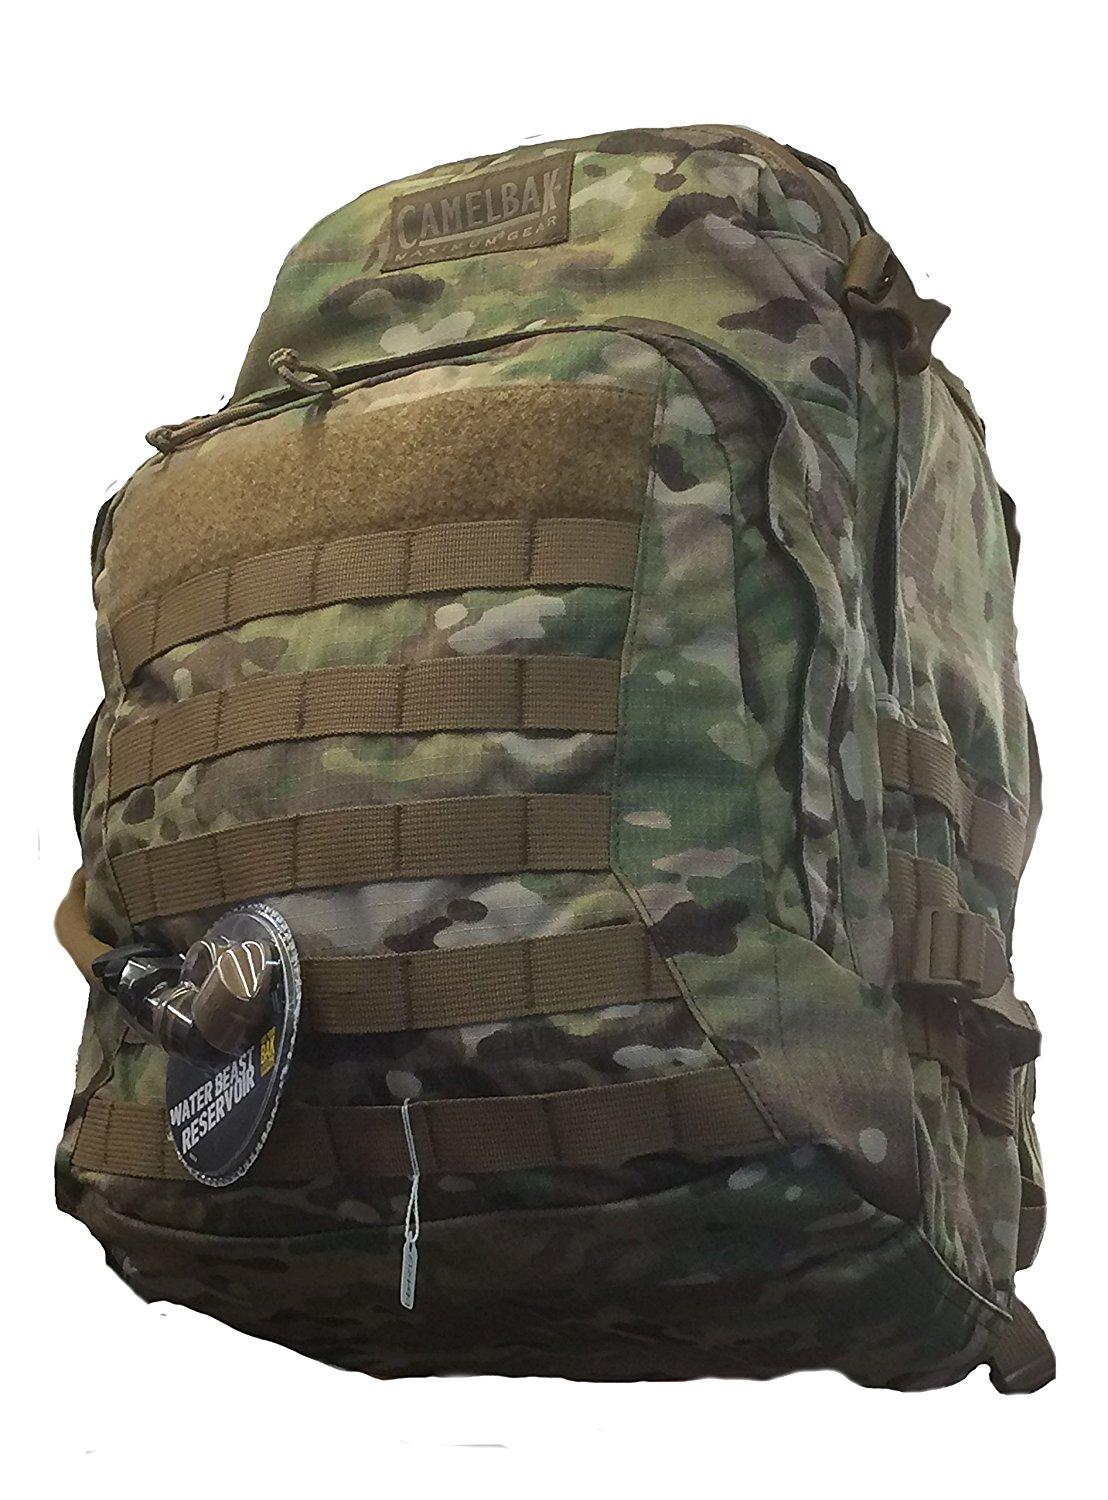 27 military backpack